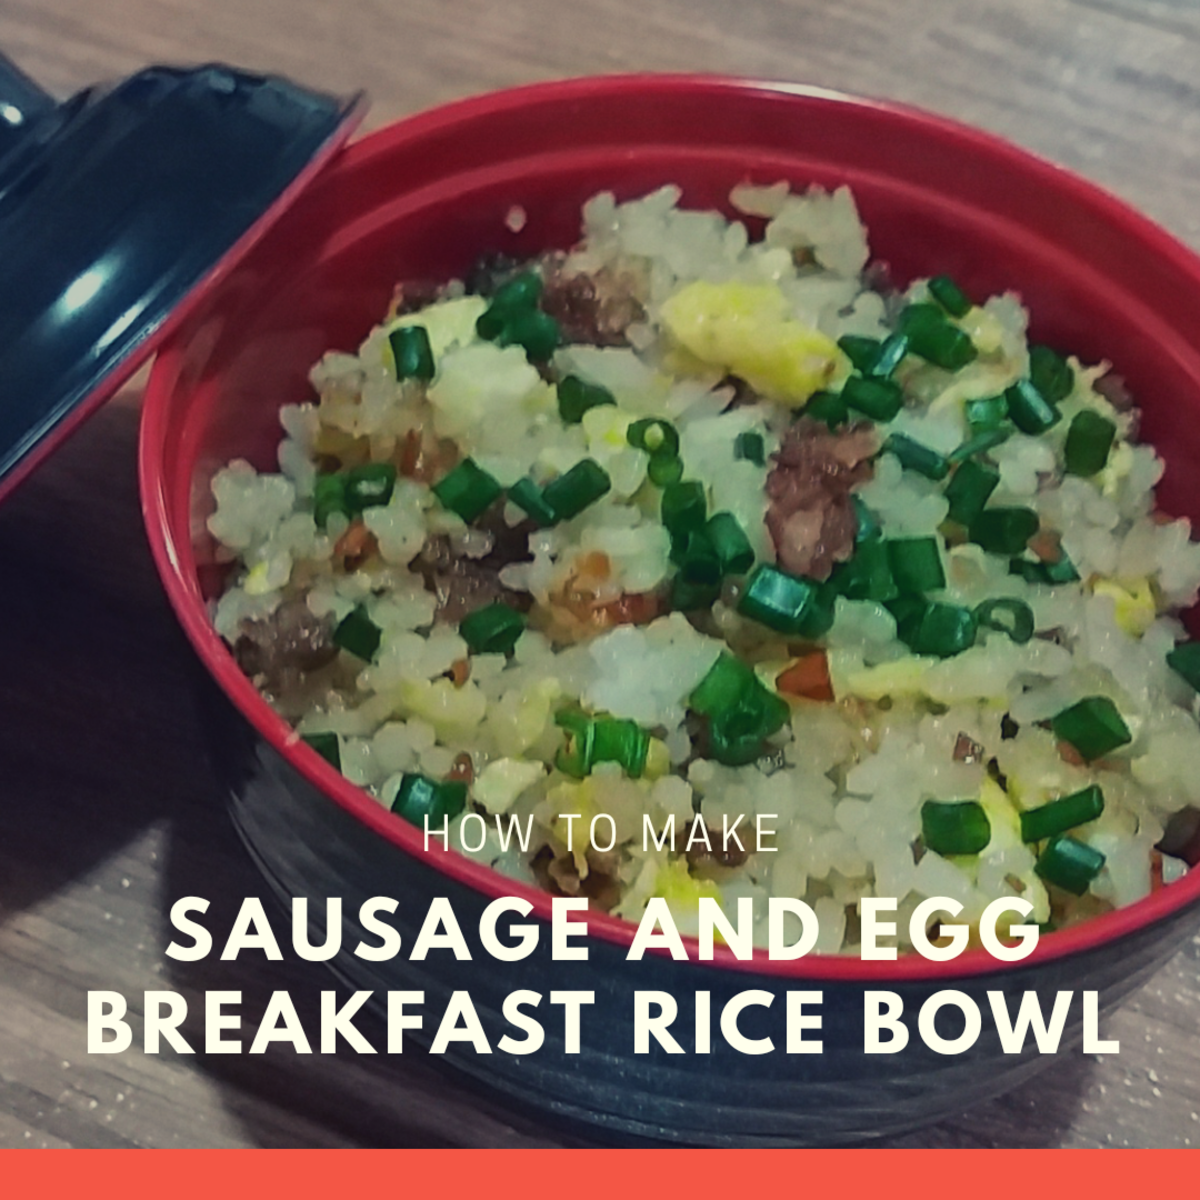 How to Make a Breakfast Rice Bowl With Sausage and Egg